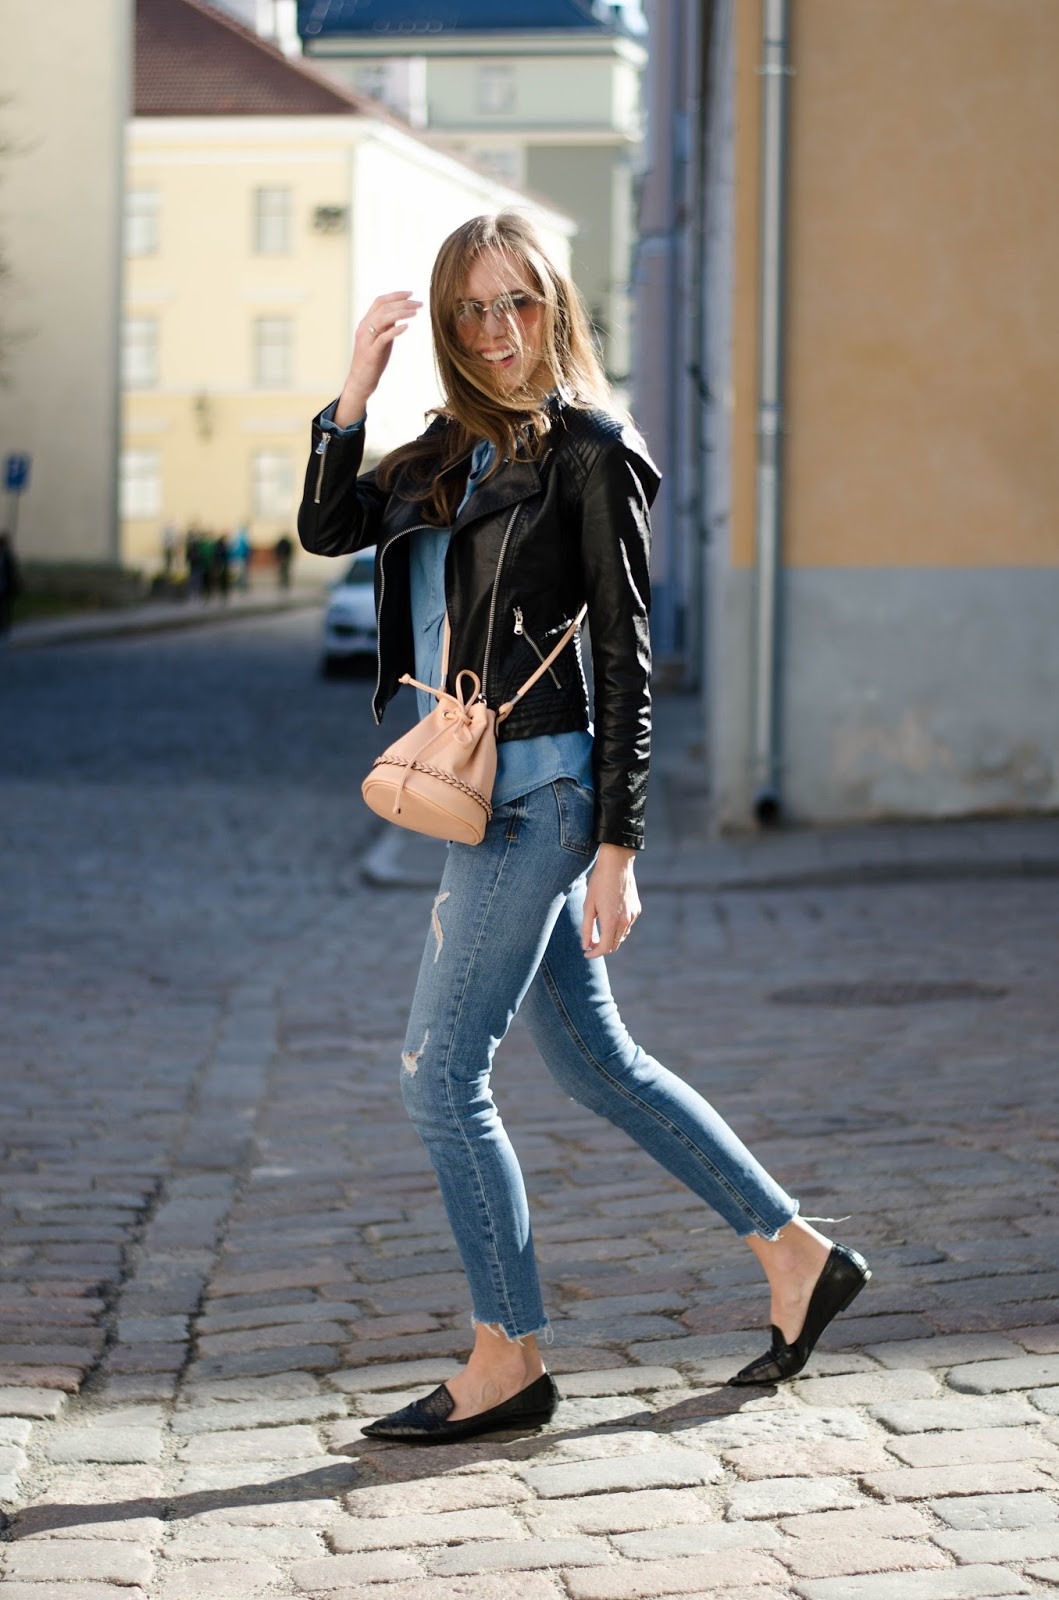 kristjaana mere spring minimalistic denim look leather jacket